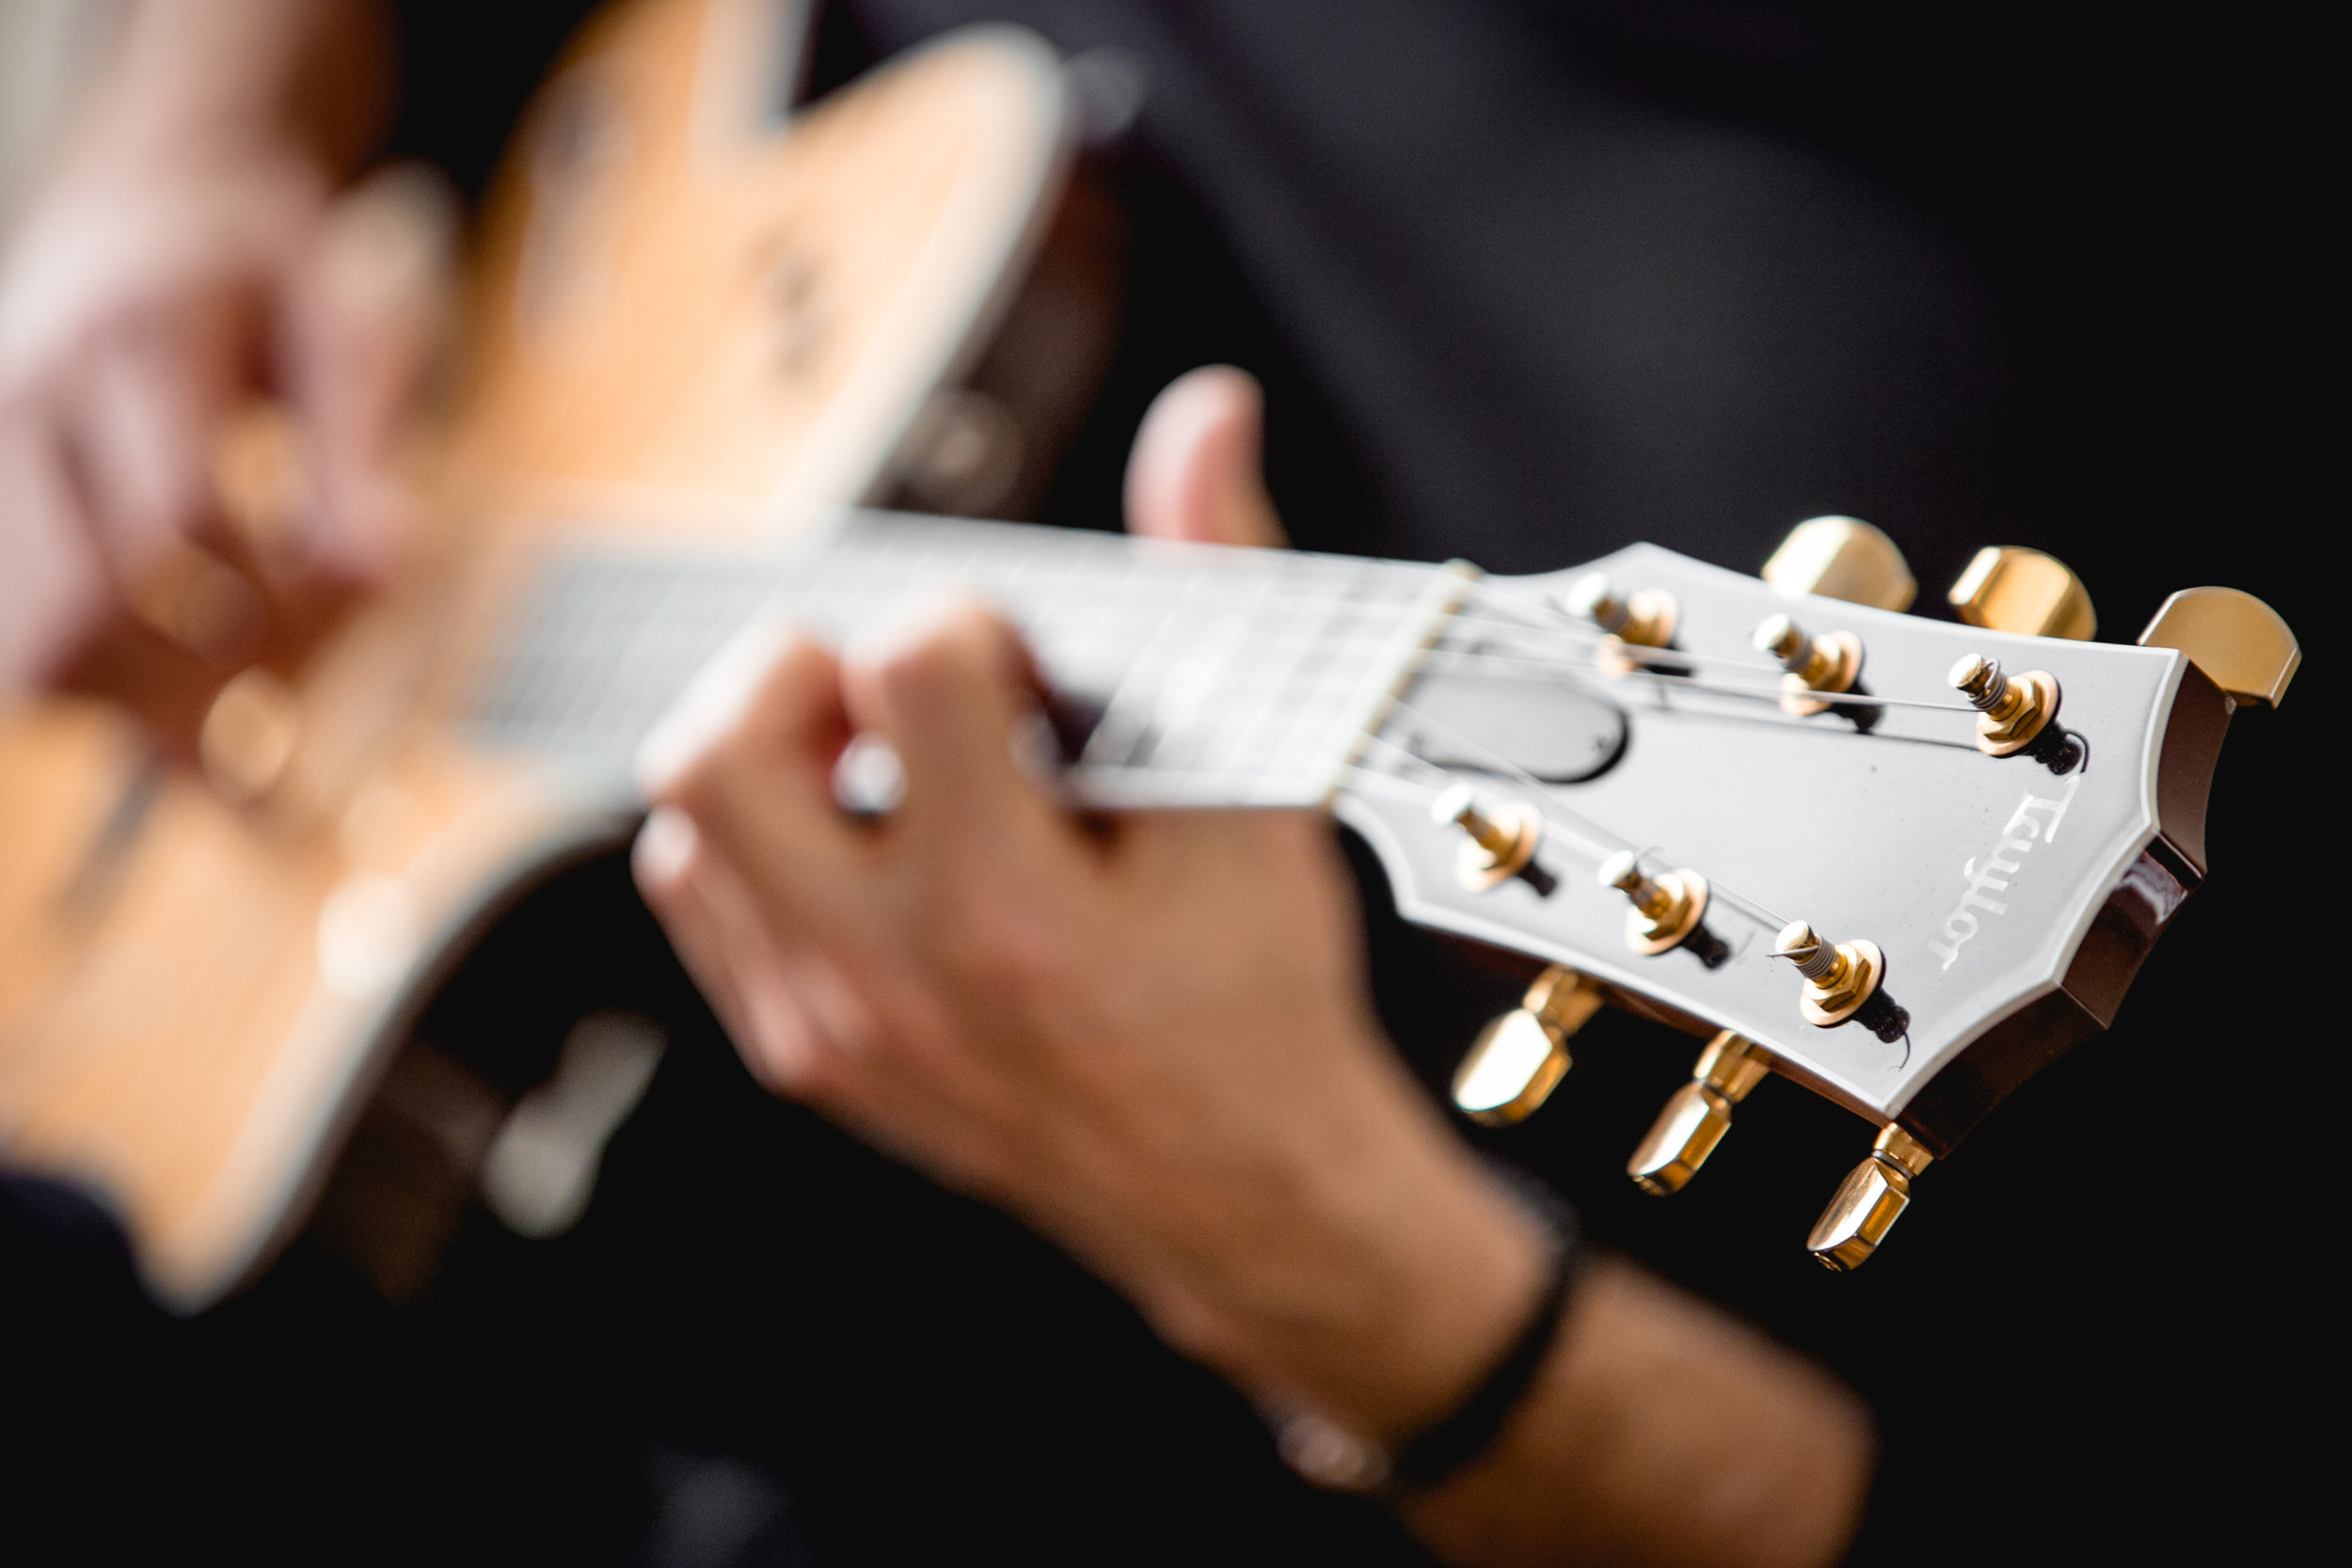 Live Music in your home